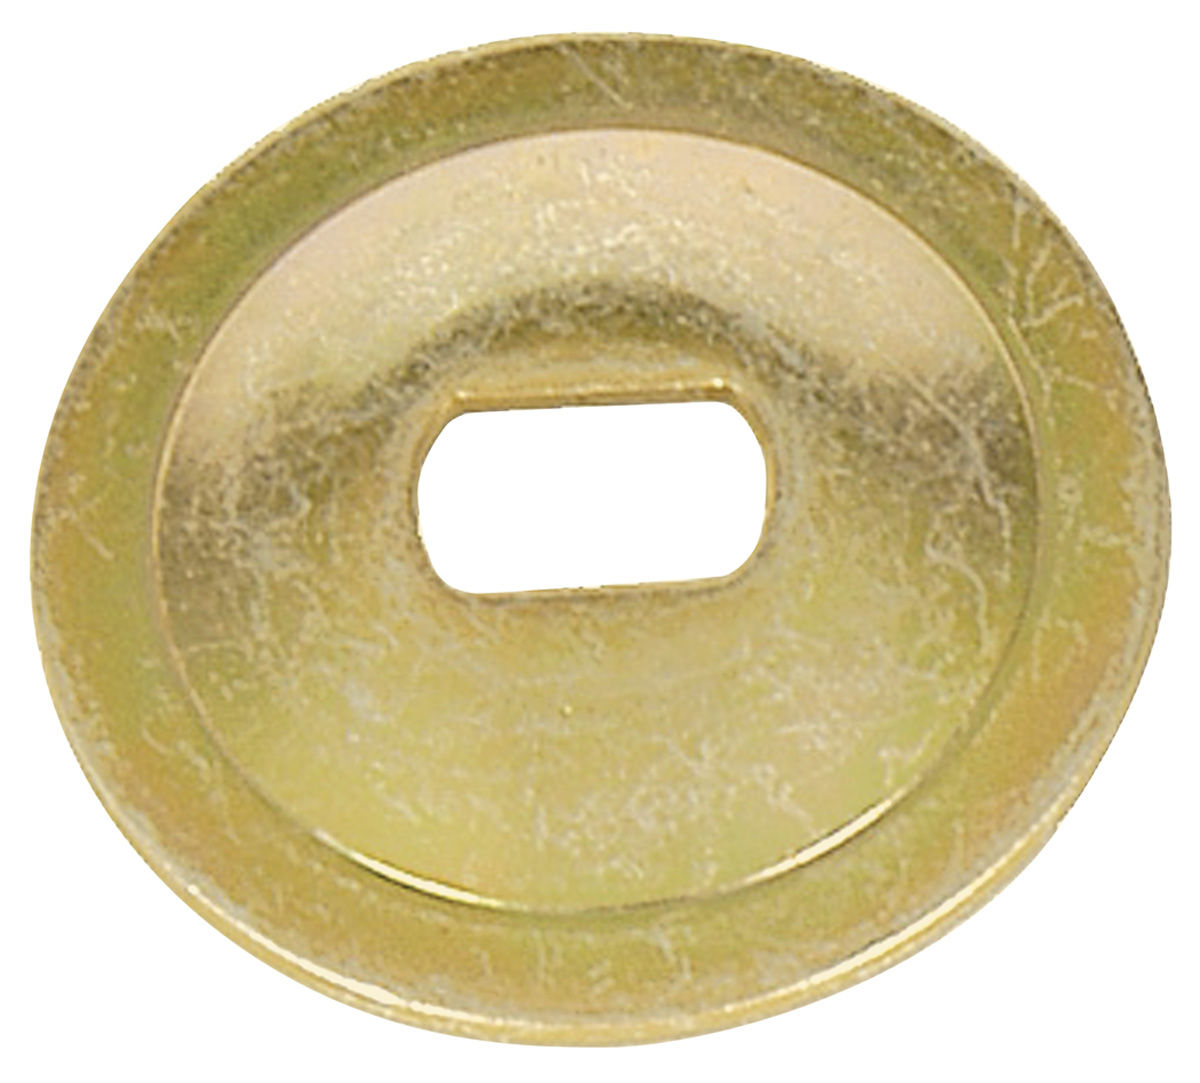 Washer, 1966-76 GM, Window Guide Roller